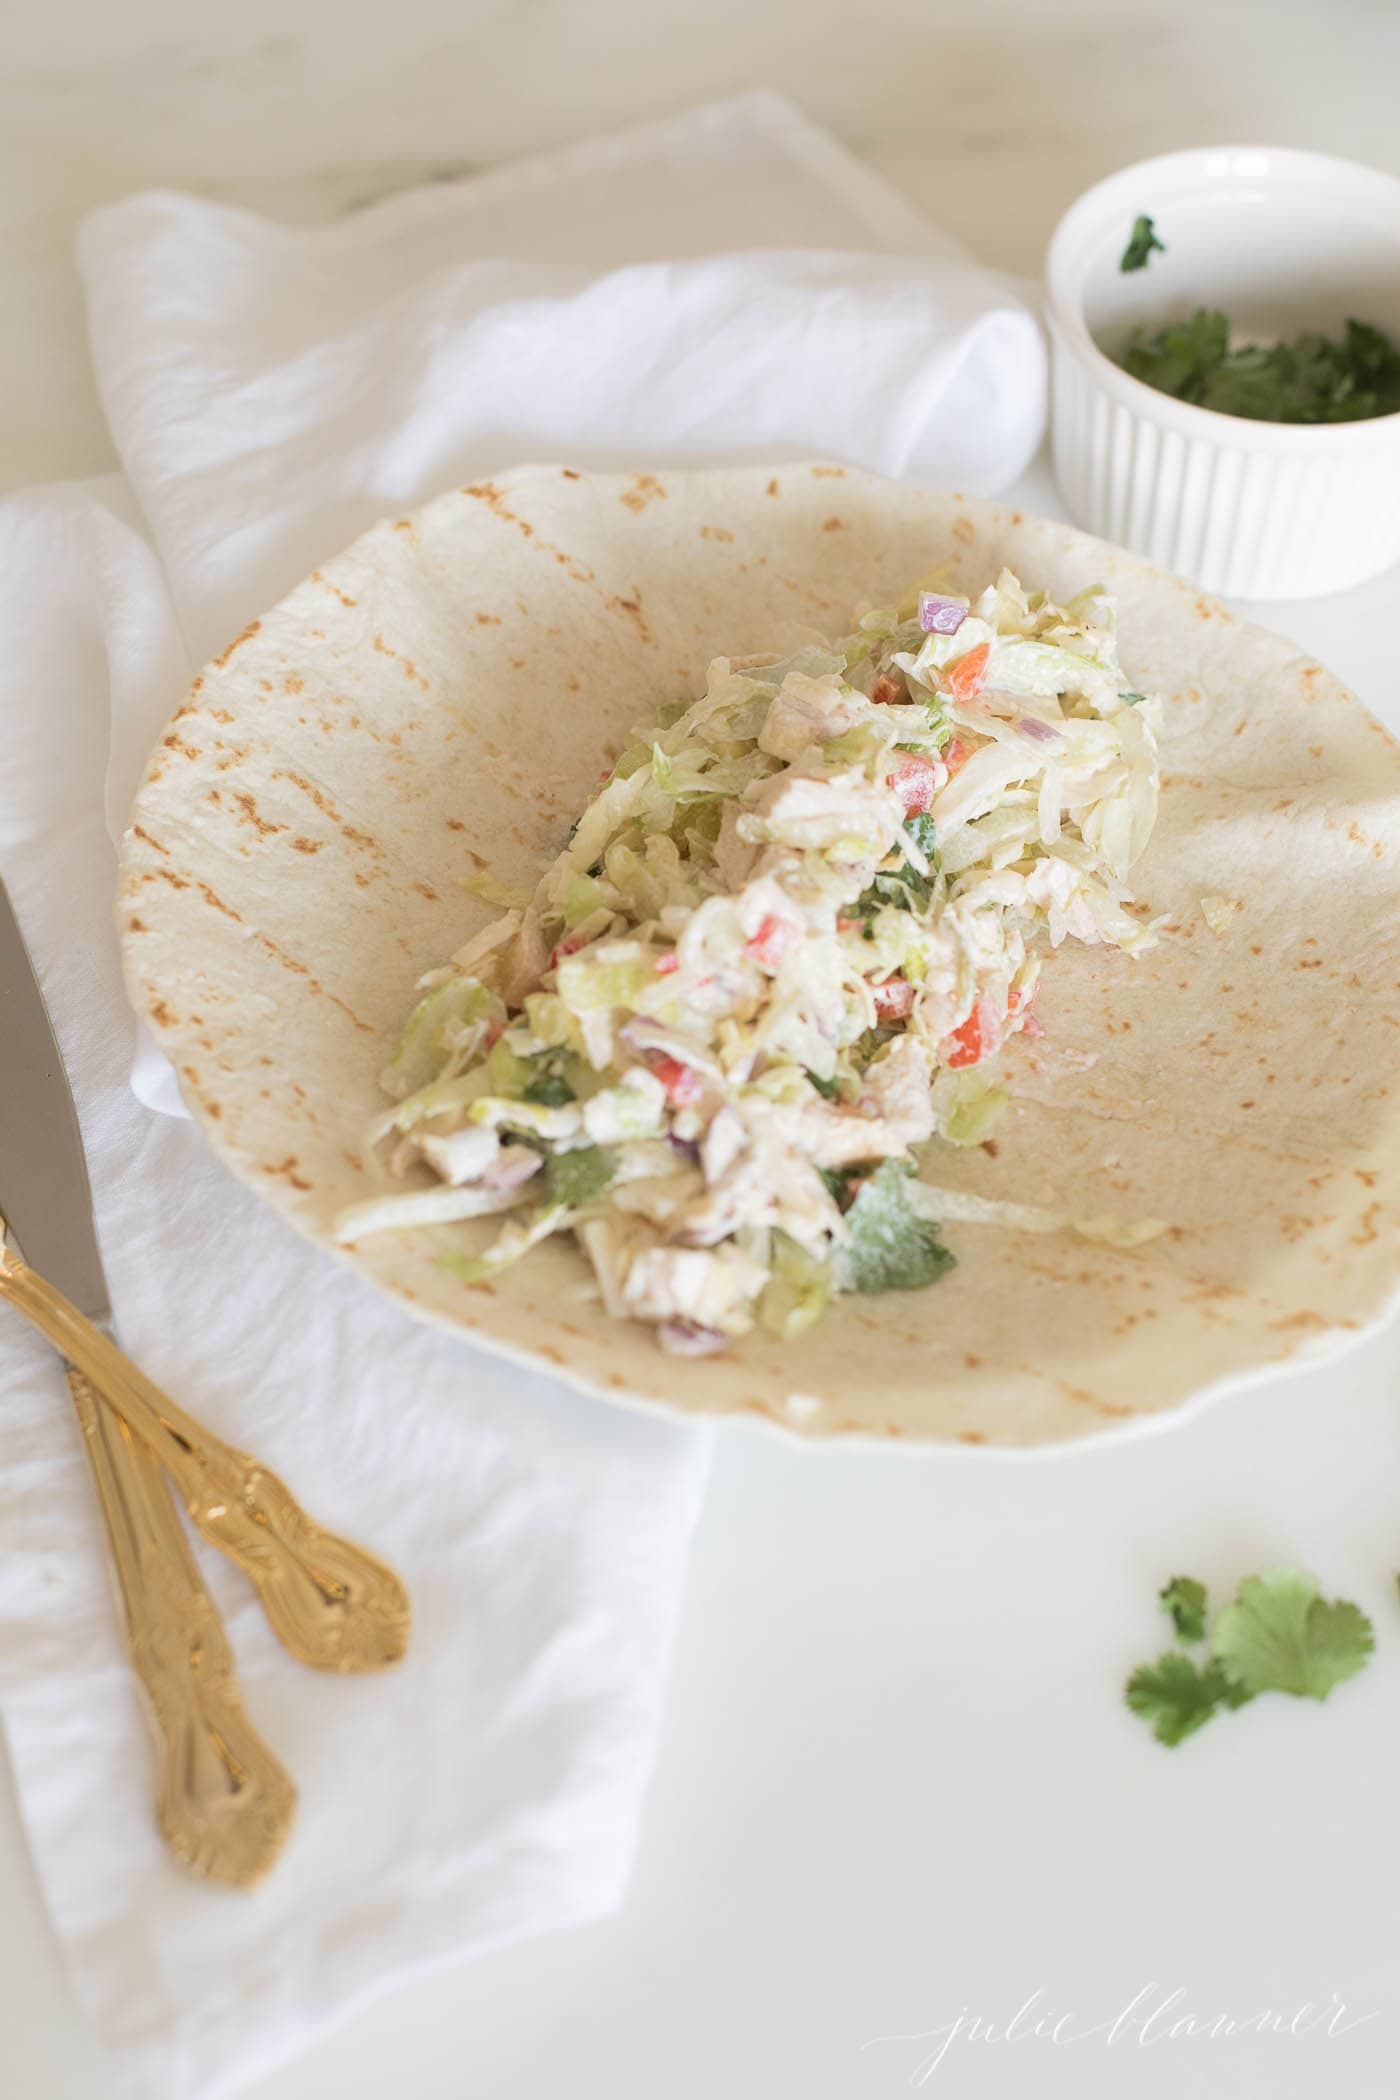 chicken lettuce and other ingredients on open tortilla